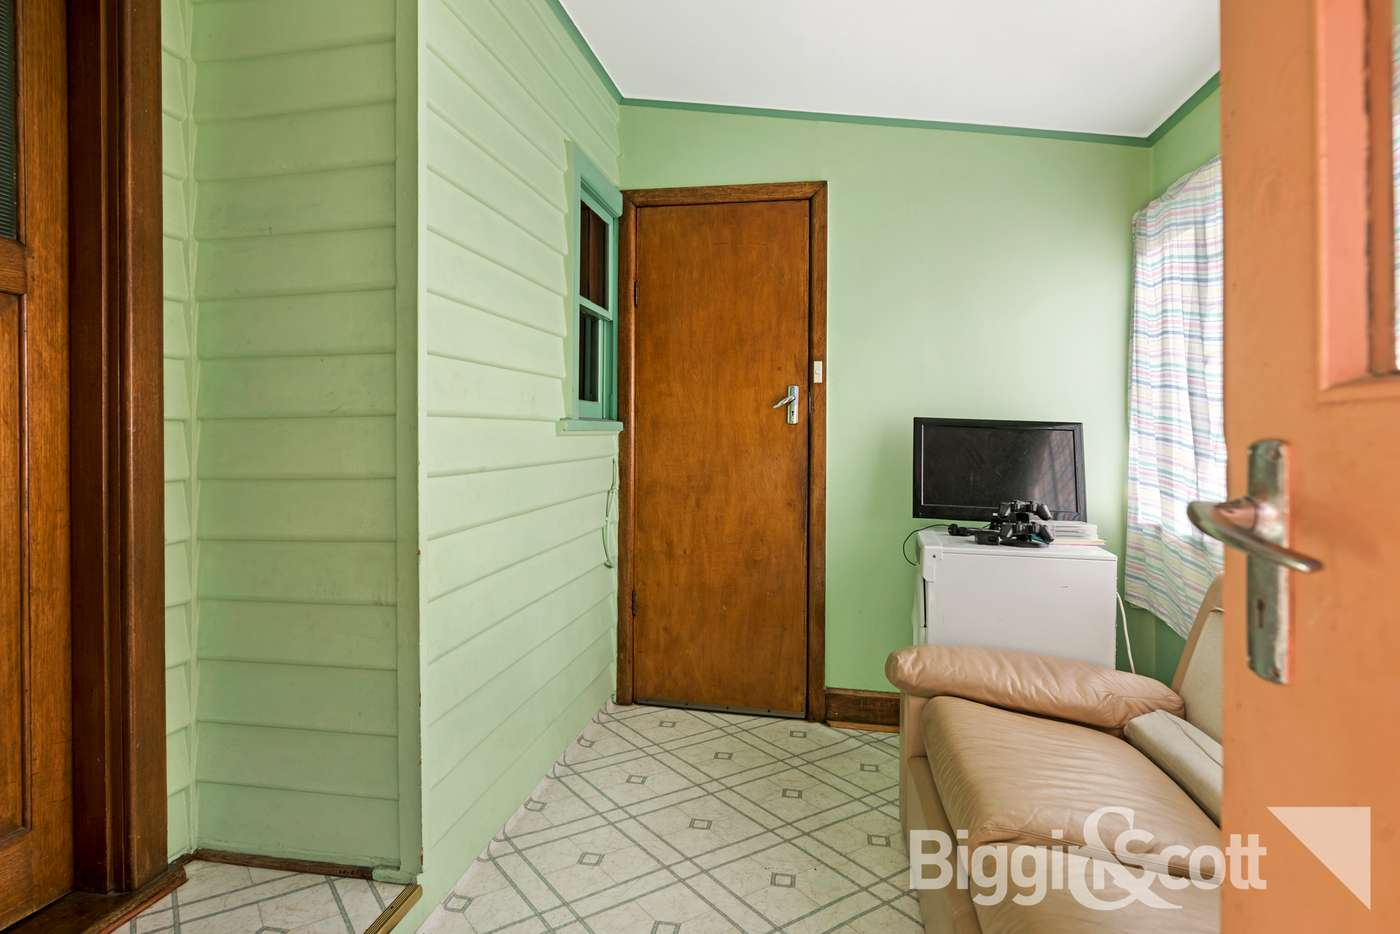 Fifth view of Homely house listing, 10 Comley Street, Sunshine North VIC 3020